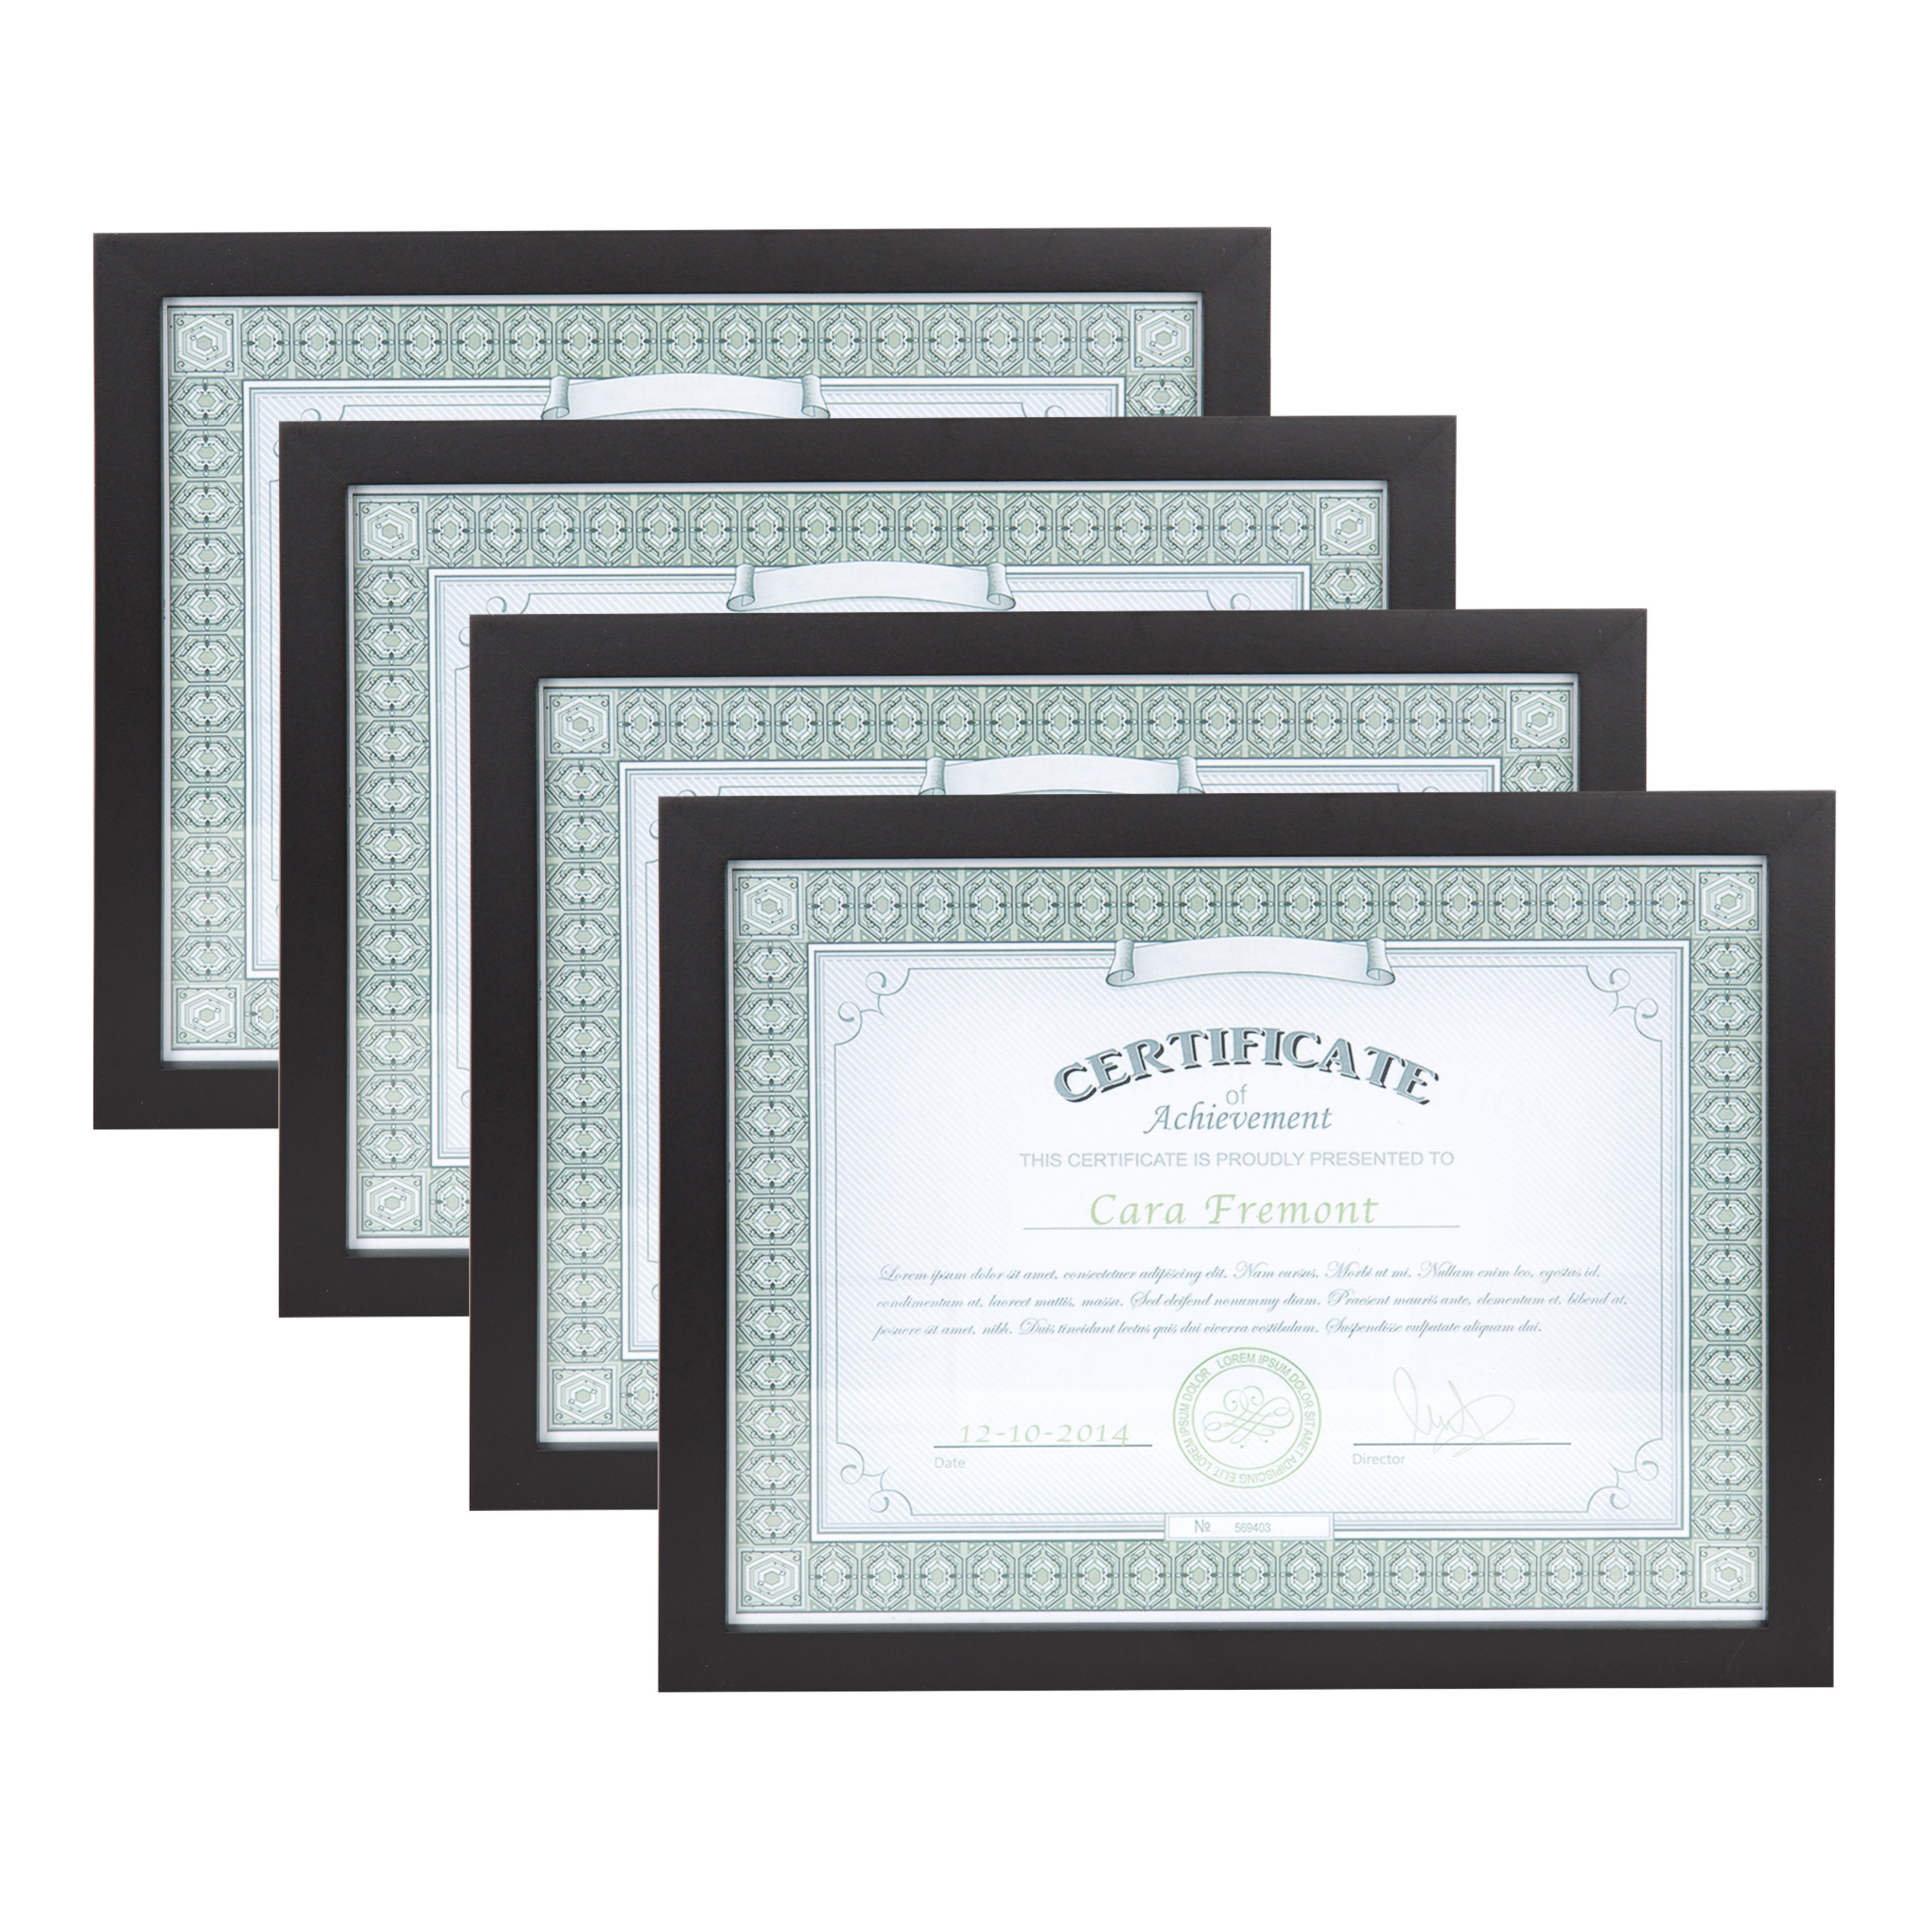 Black wood gallery document frame pack of 4 free shipping on black wood gallery document frame pack of 4 free shipping on orders over 45 overstock 18857567 jeuxipadfo Choice Image